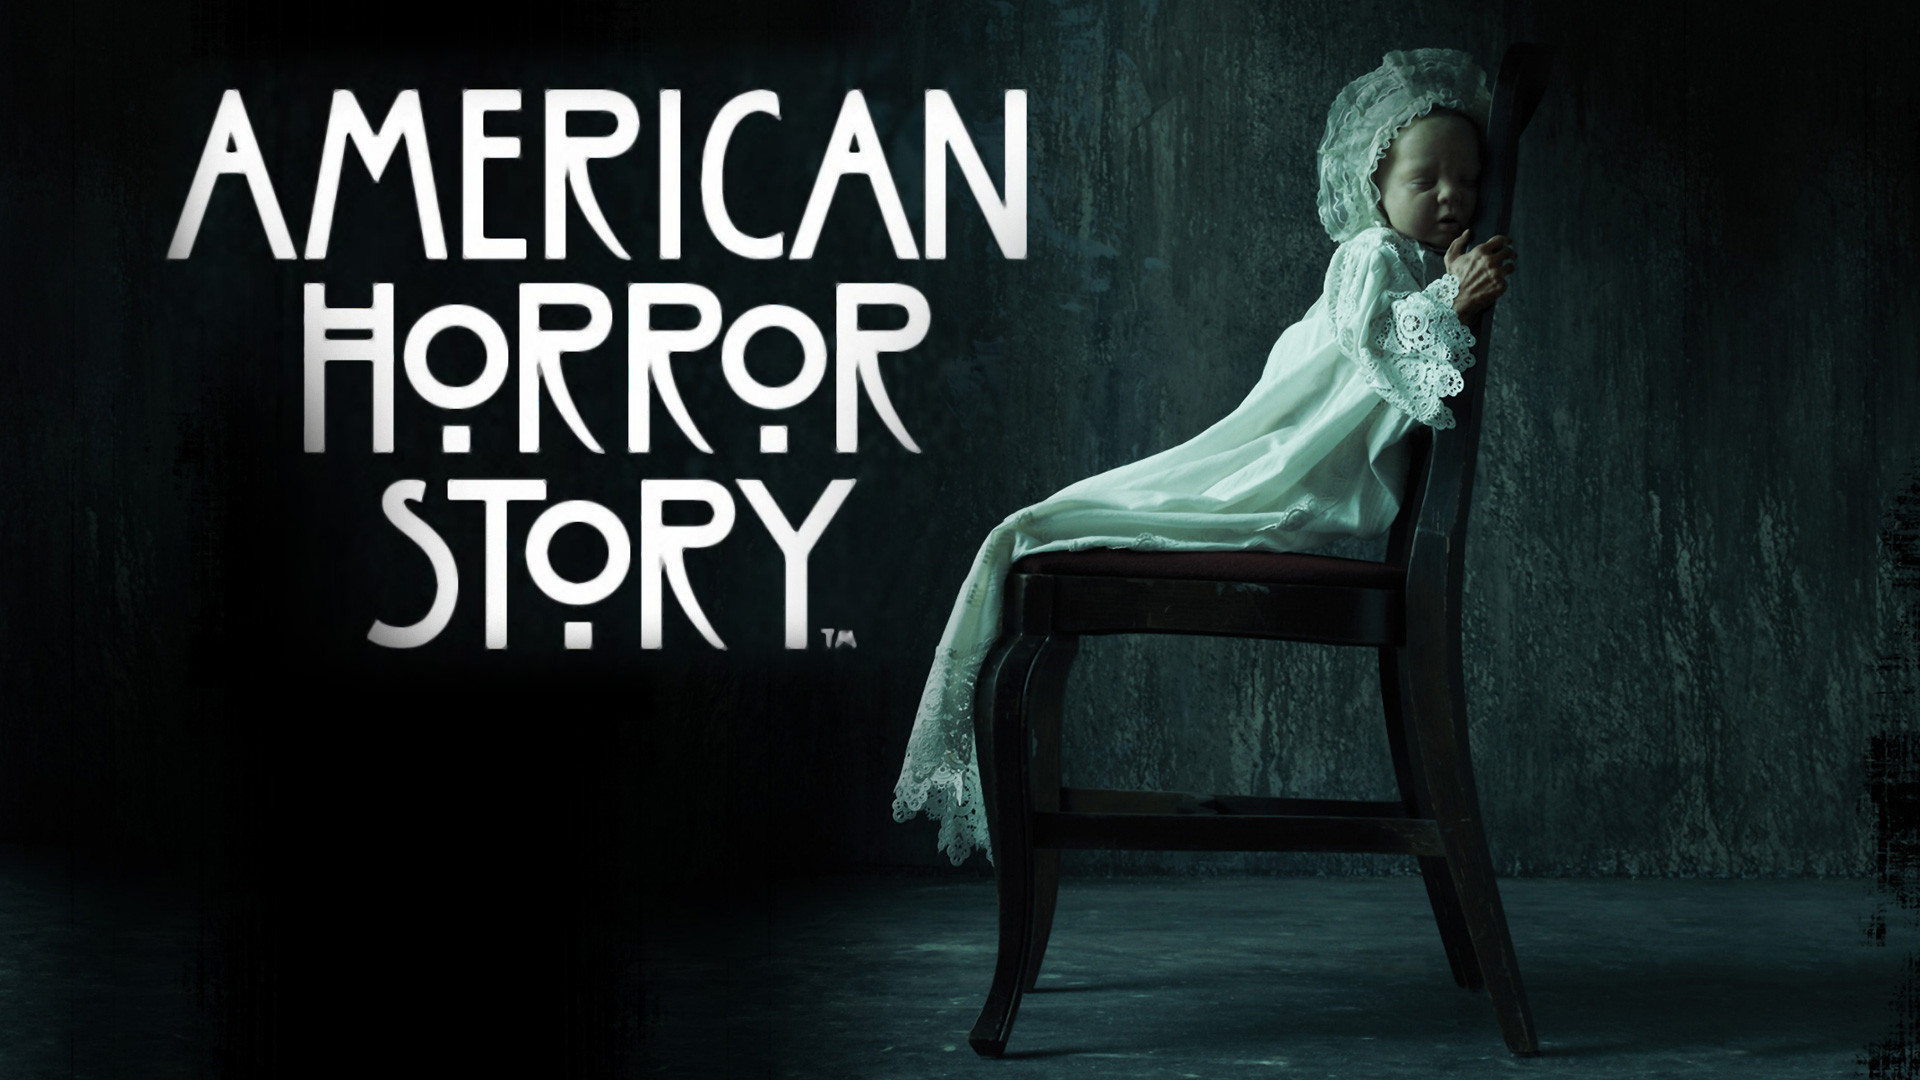 American horror story hd wallpaper background image 1920x1080 id 675305 wallpaper abyss - American horror story wallpaper ...